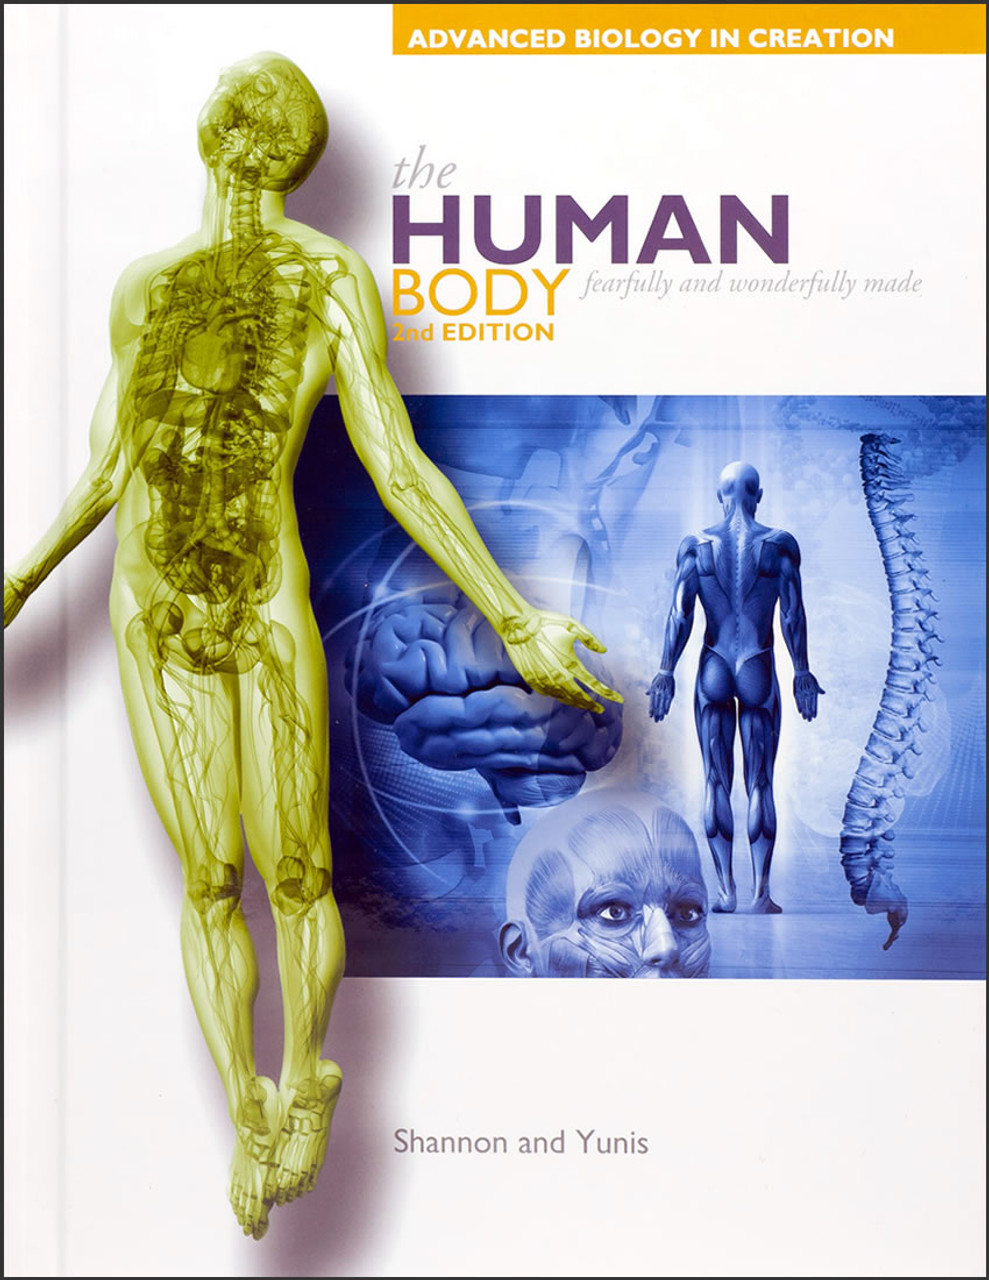 Alternate Cover - The Human Body: Fearfully and Wonderfully Made, 2nd edition